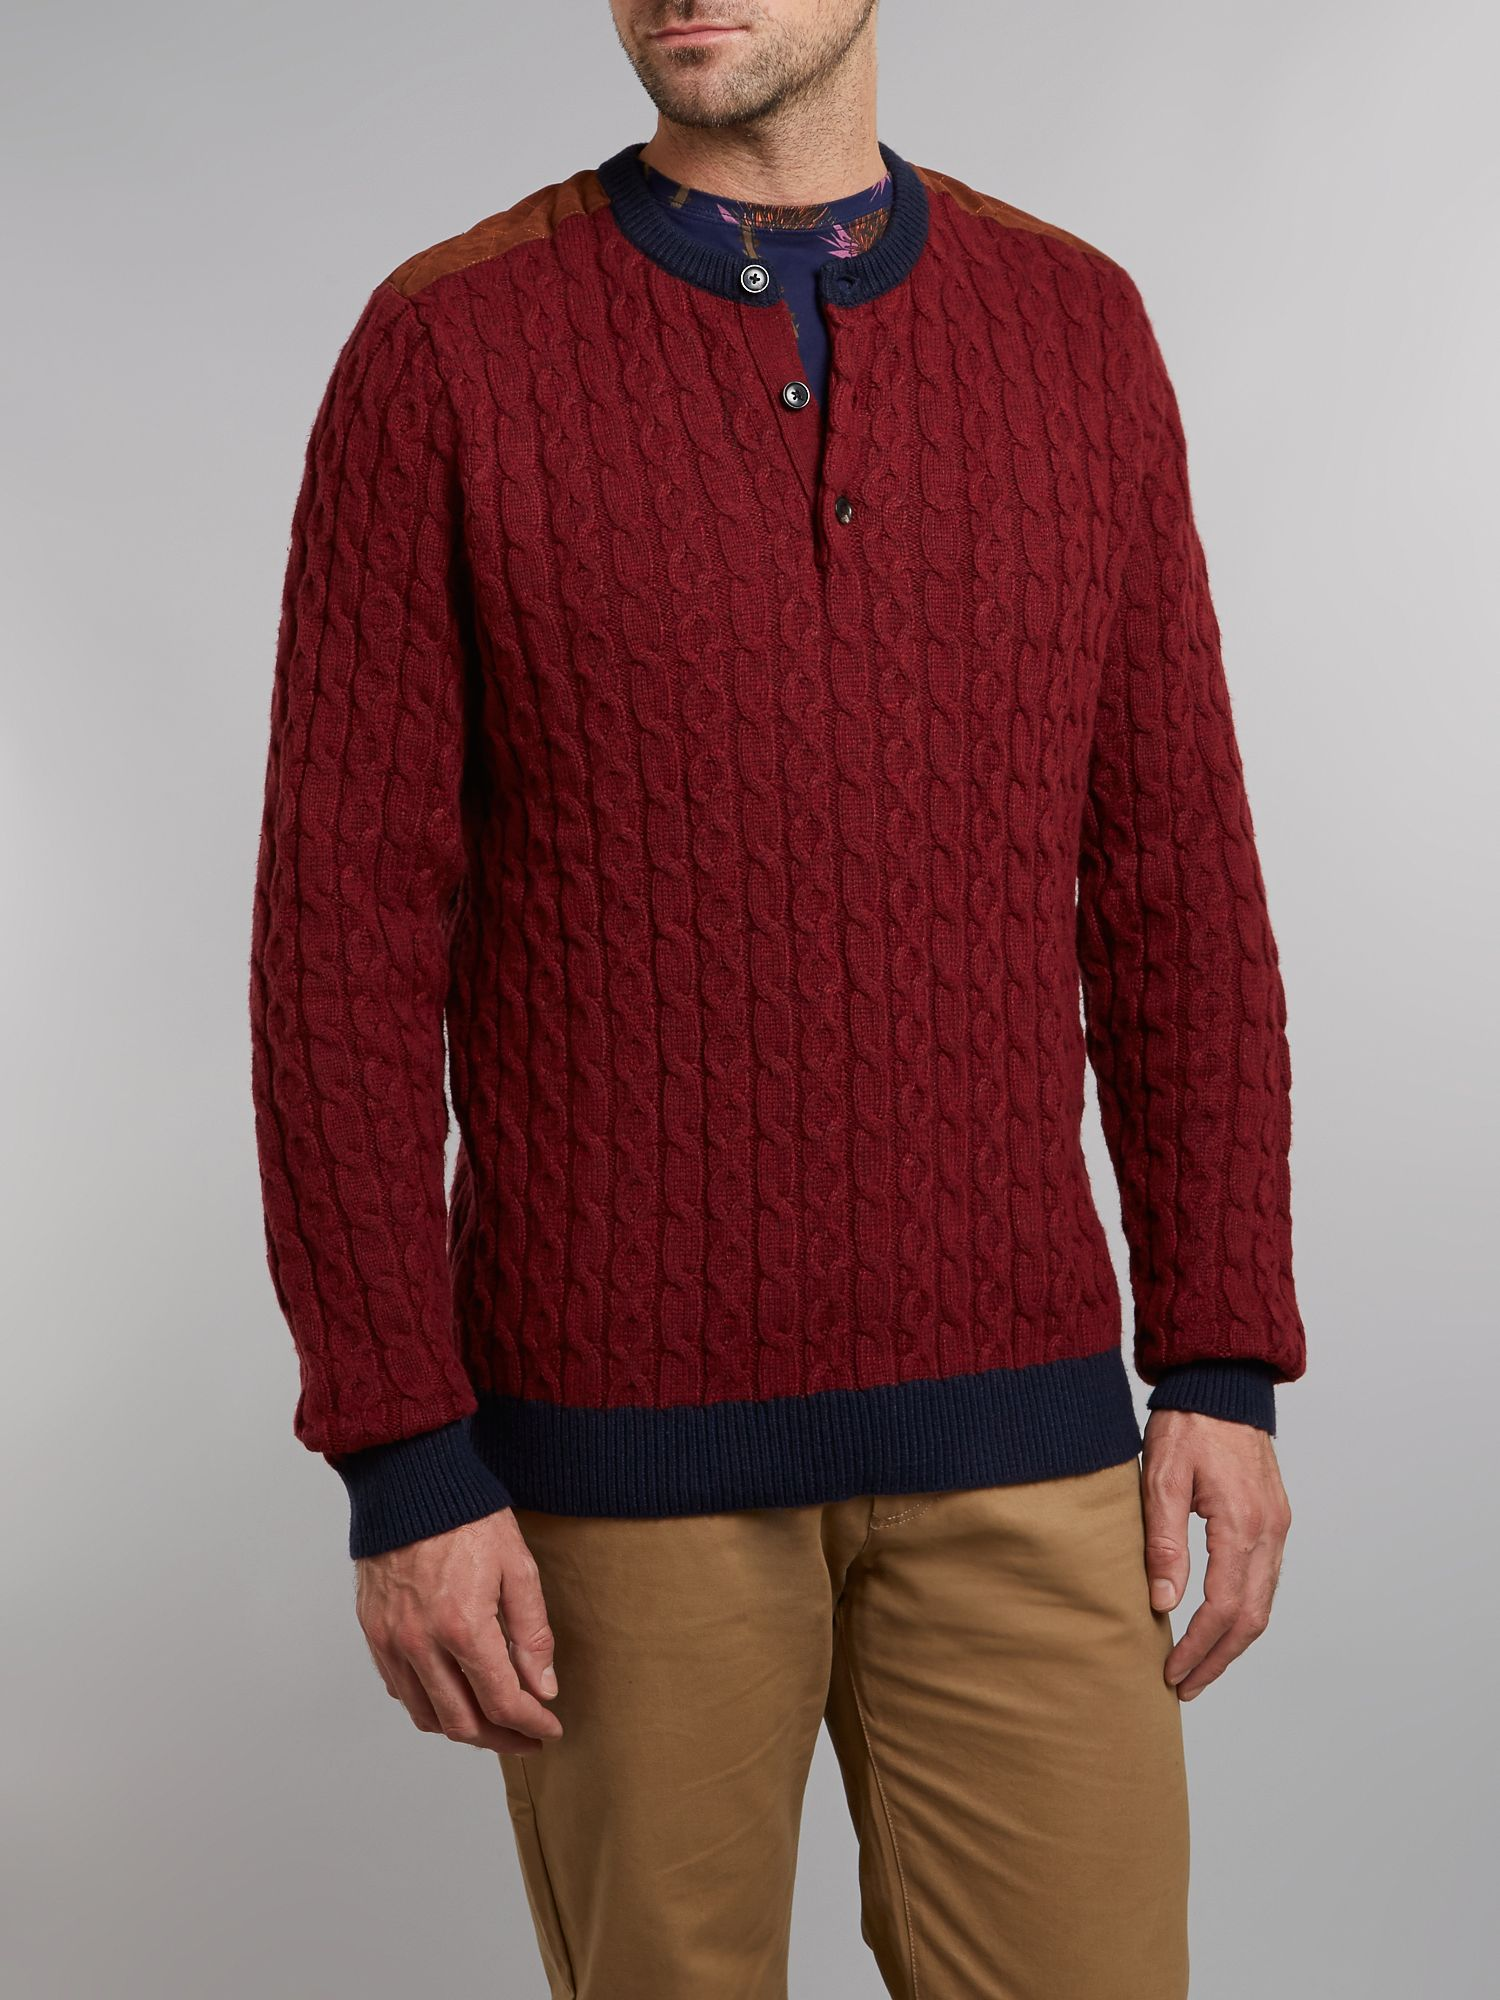 Crew neck grandad cable knit